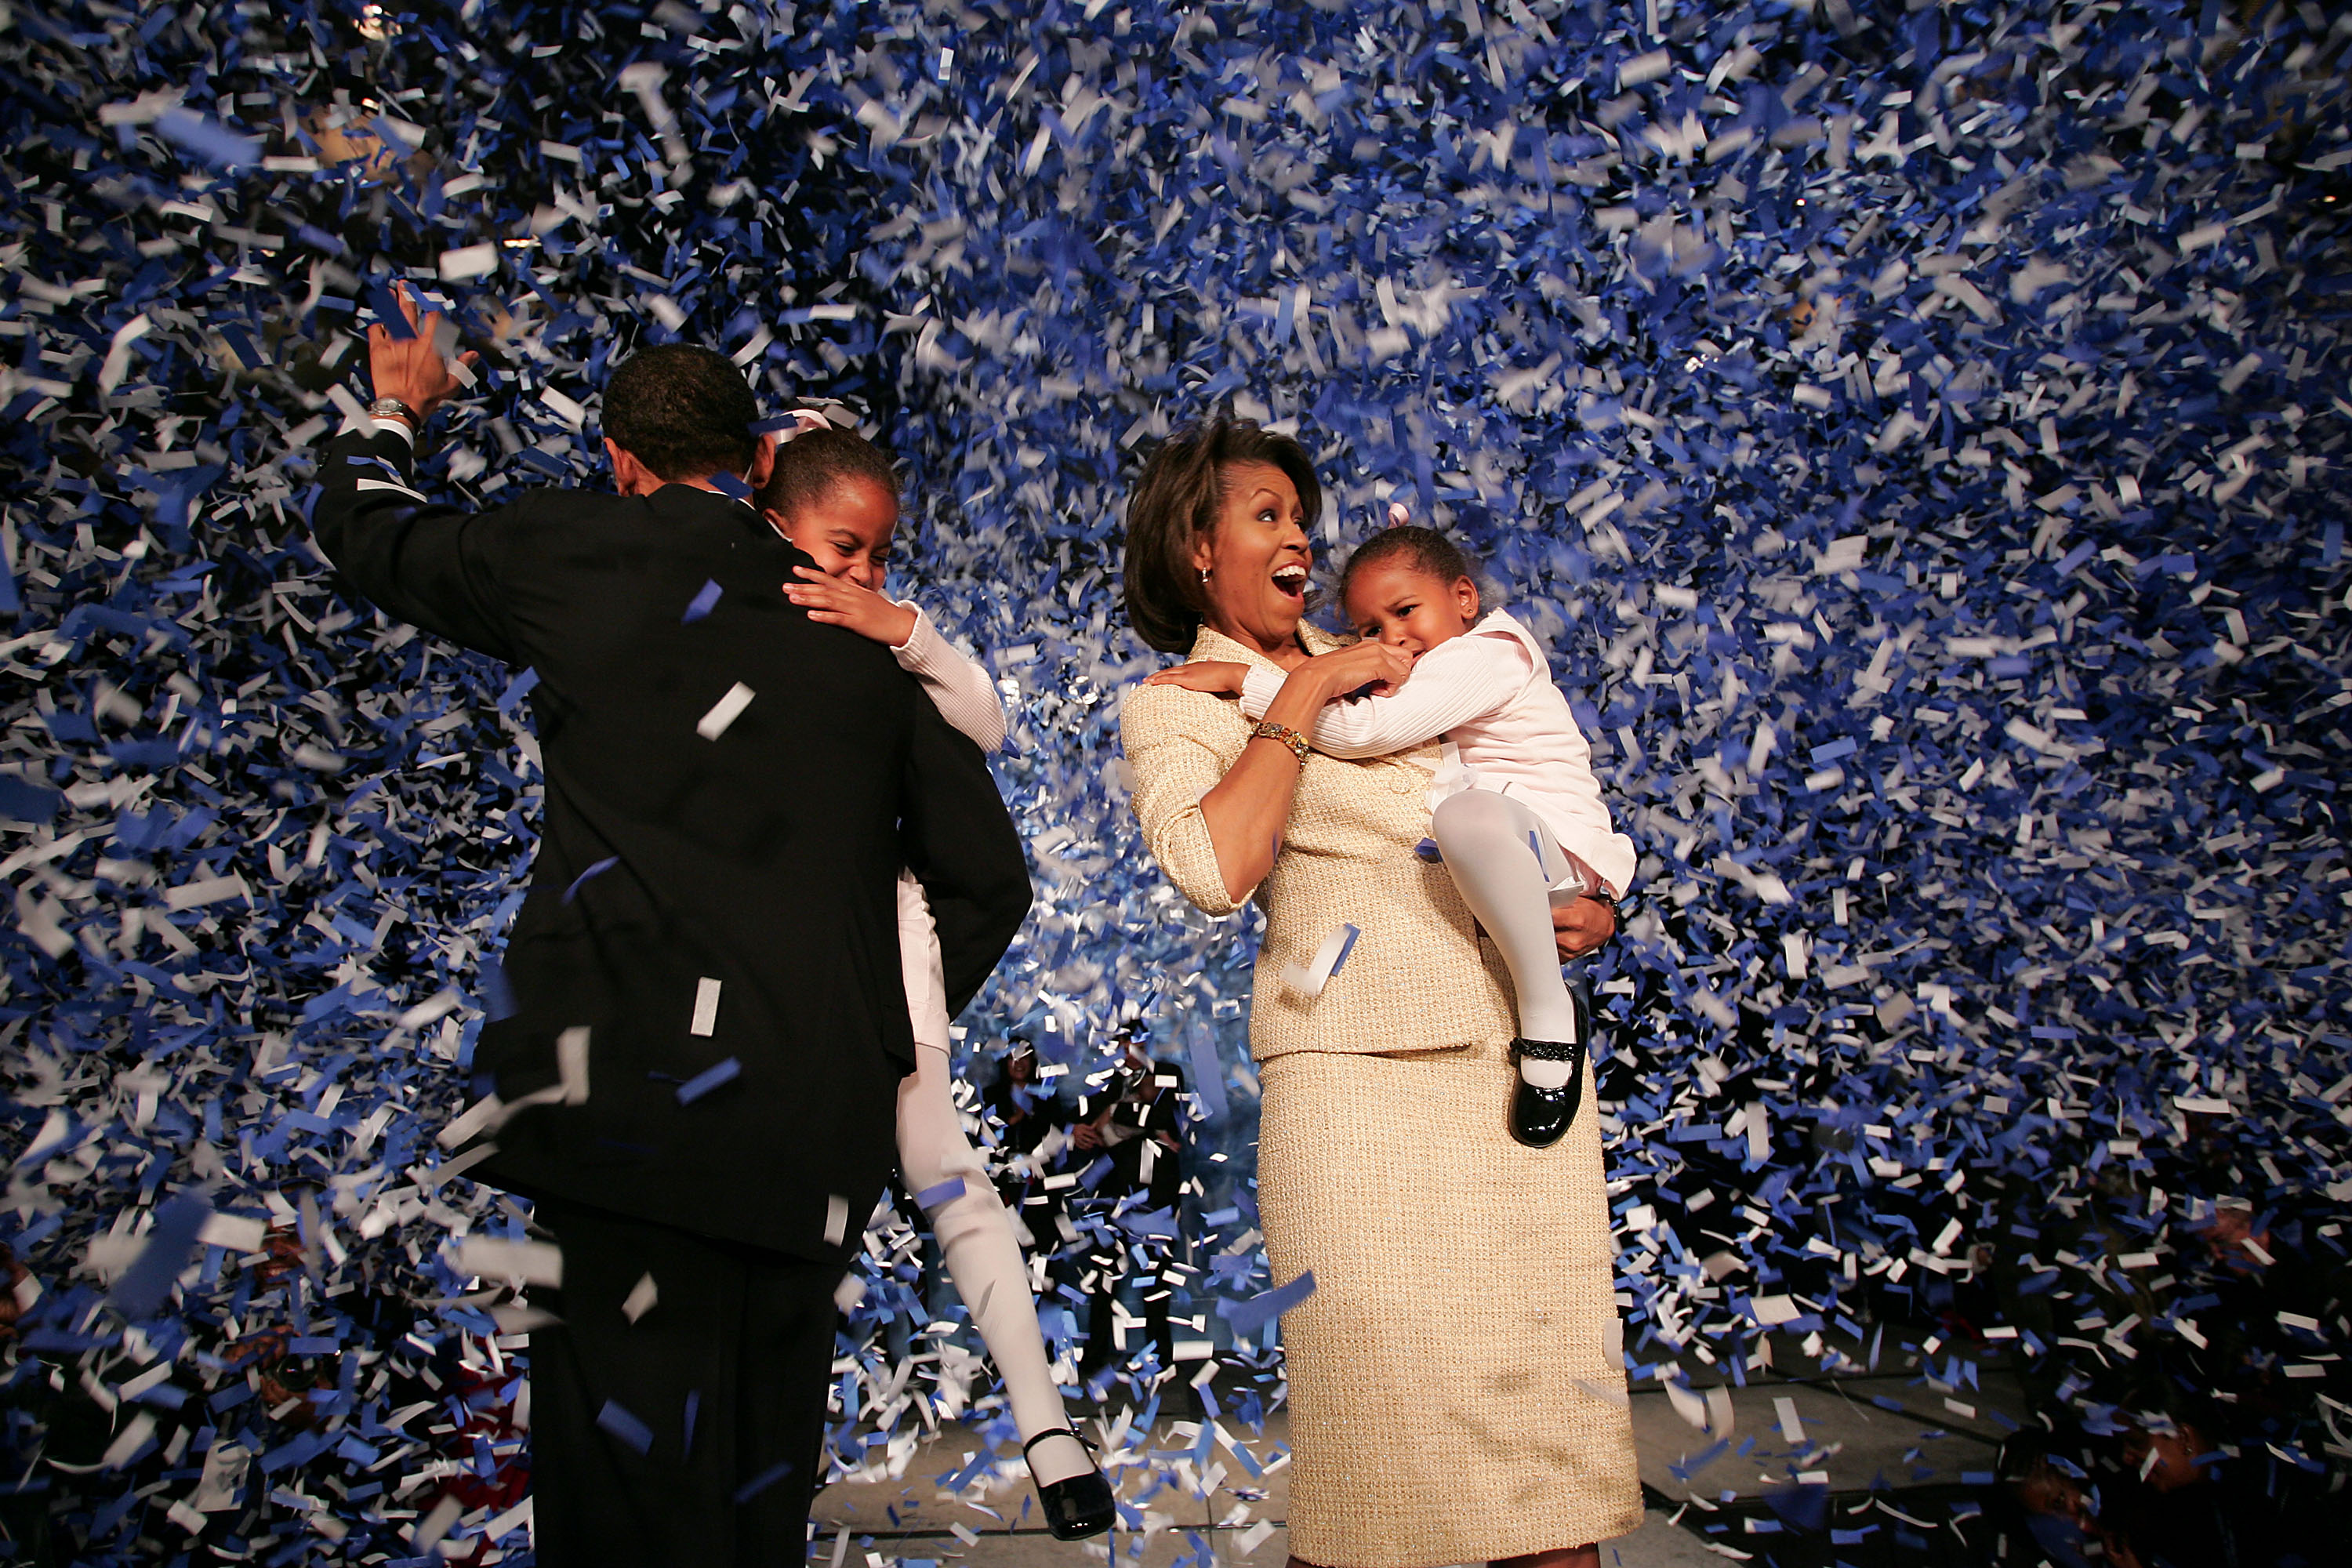 Then-candidate for the U.S. Senate Barack Obama celebrates with his daughters Malia and Sasha and wife Michelle during a victory party in Chicago on Nov. 2, 2004.